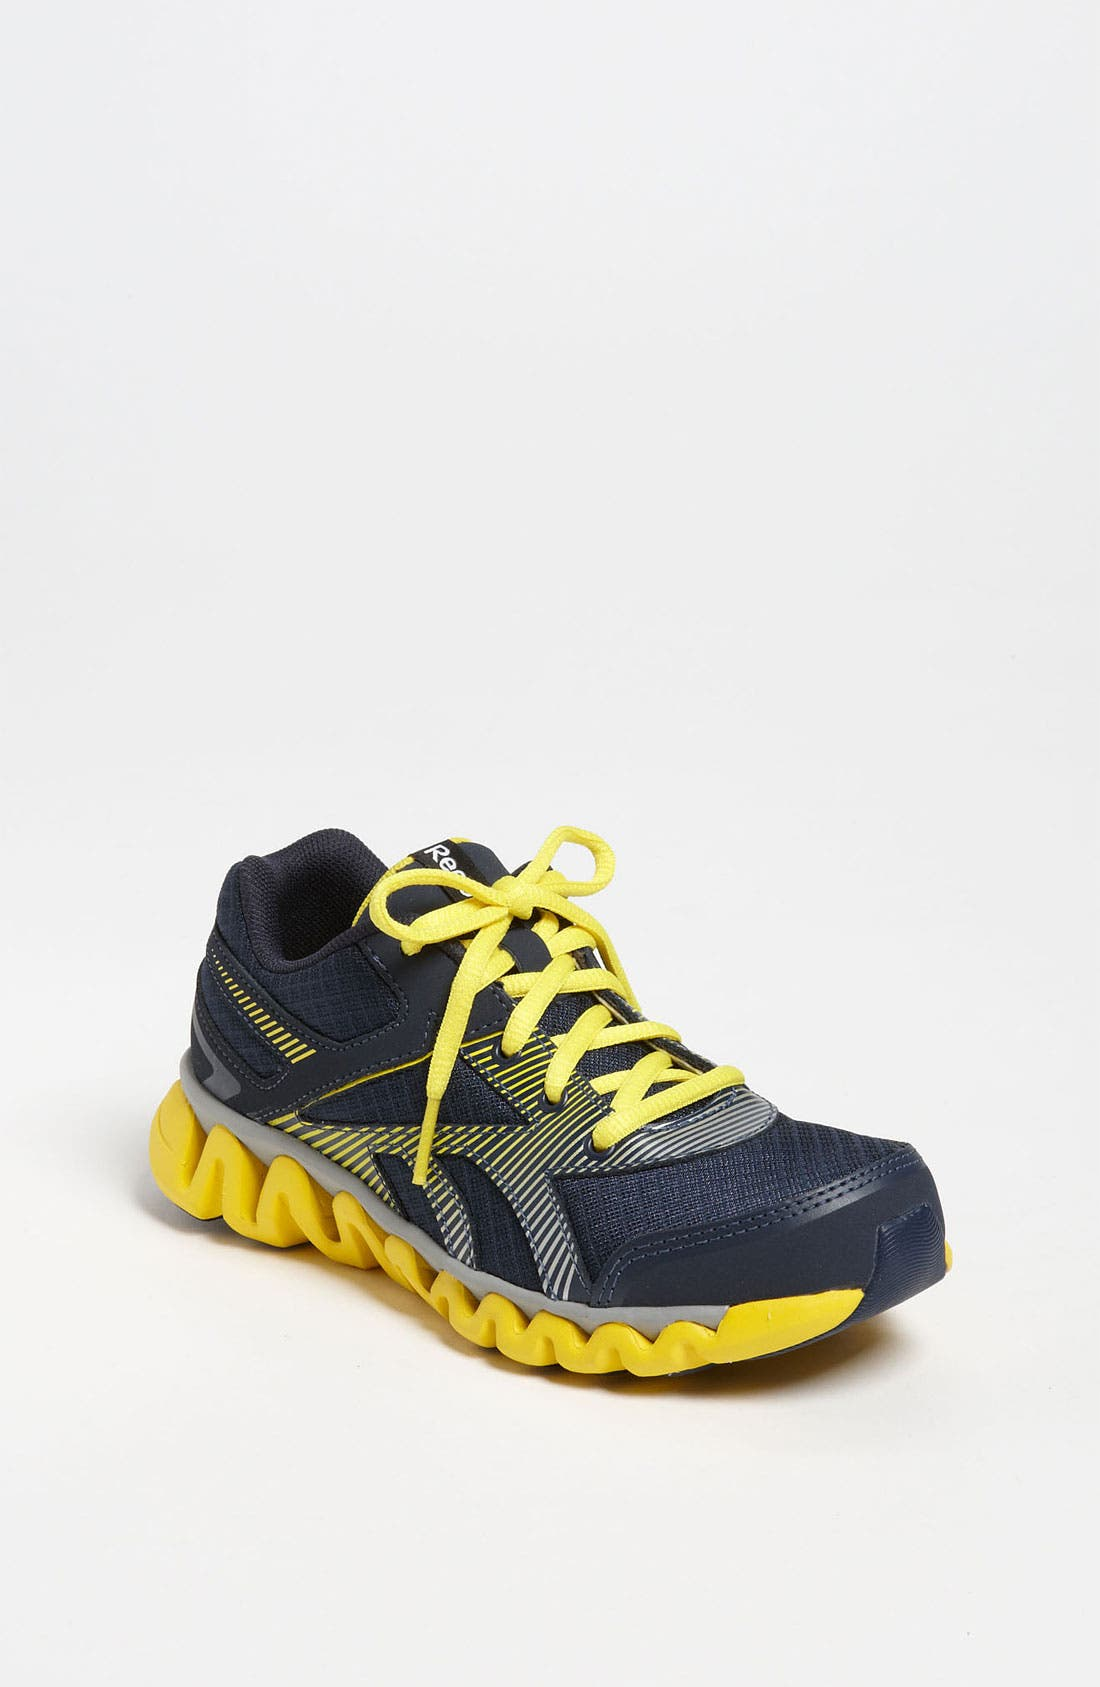 Main Image - Reebok 'ZigLite Electrify' Sneaker (Toddler, Little Kid & Big Kid)